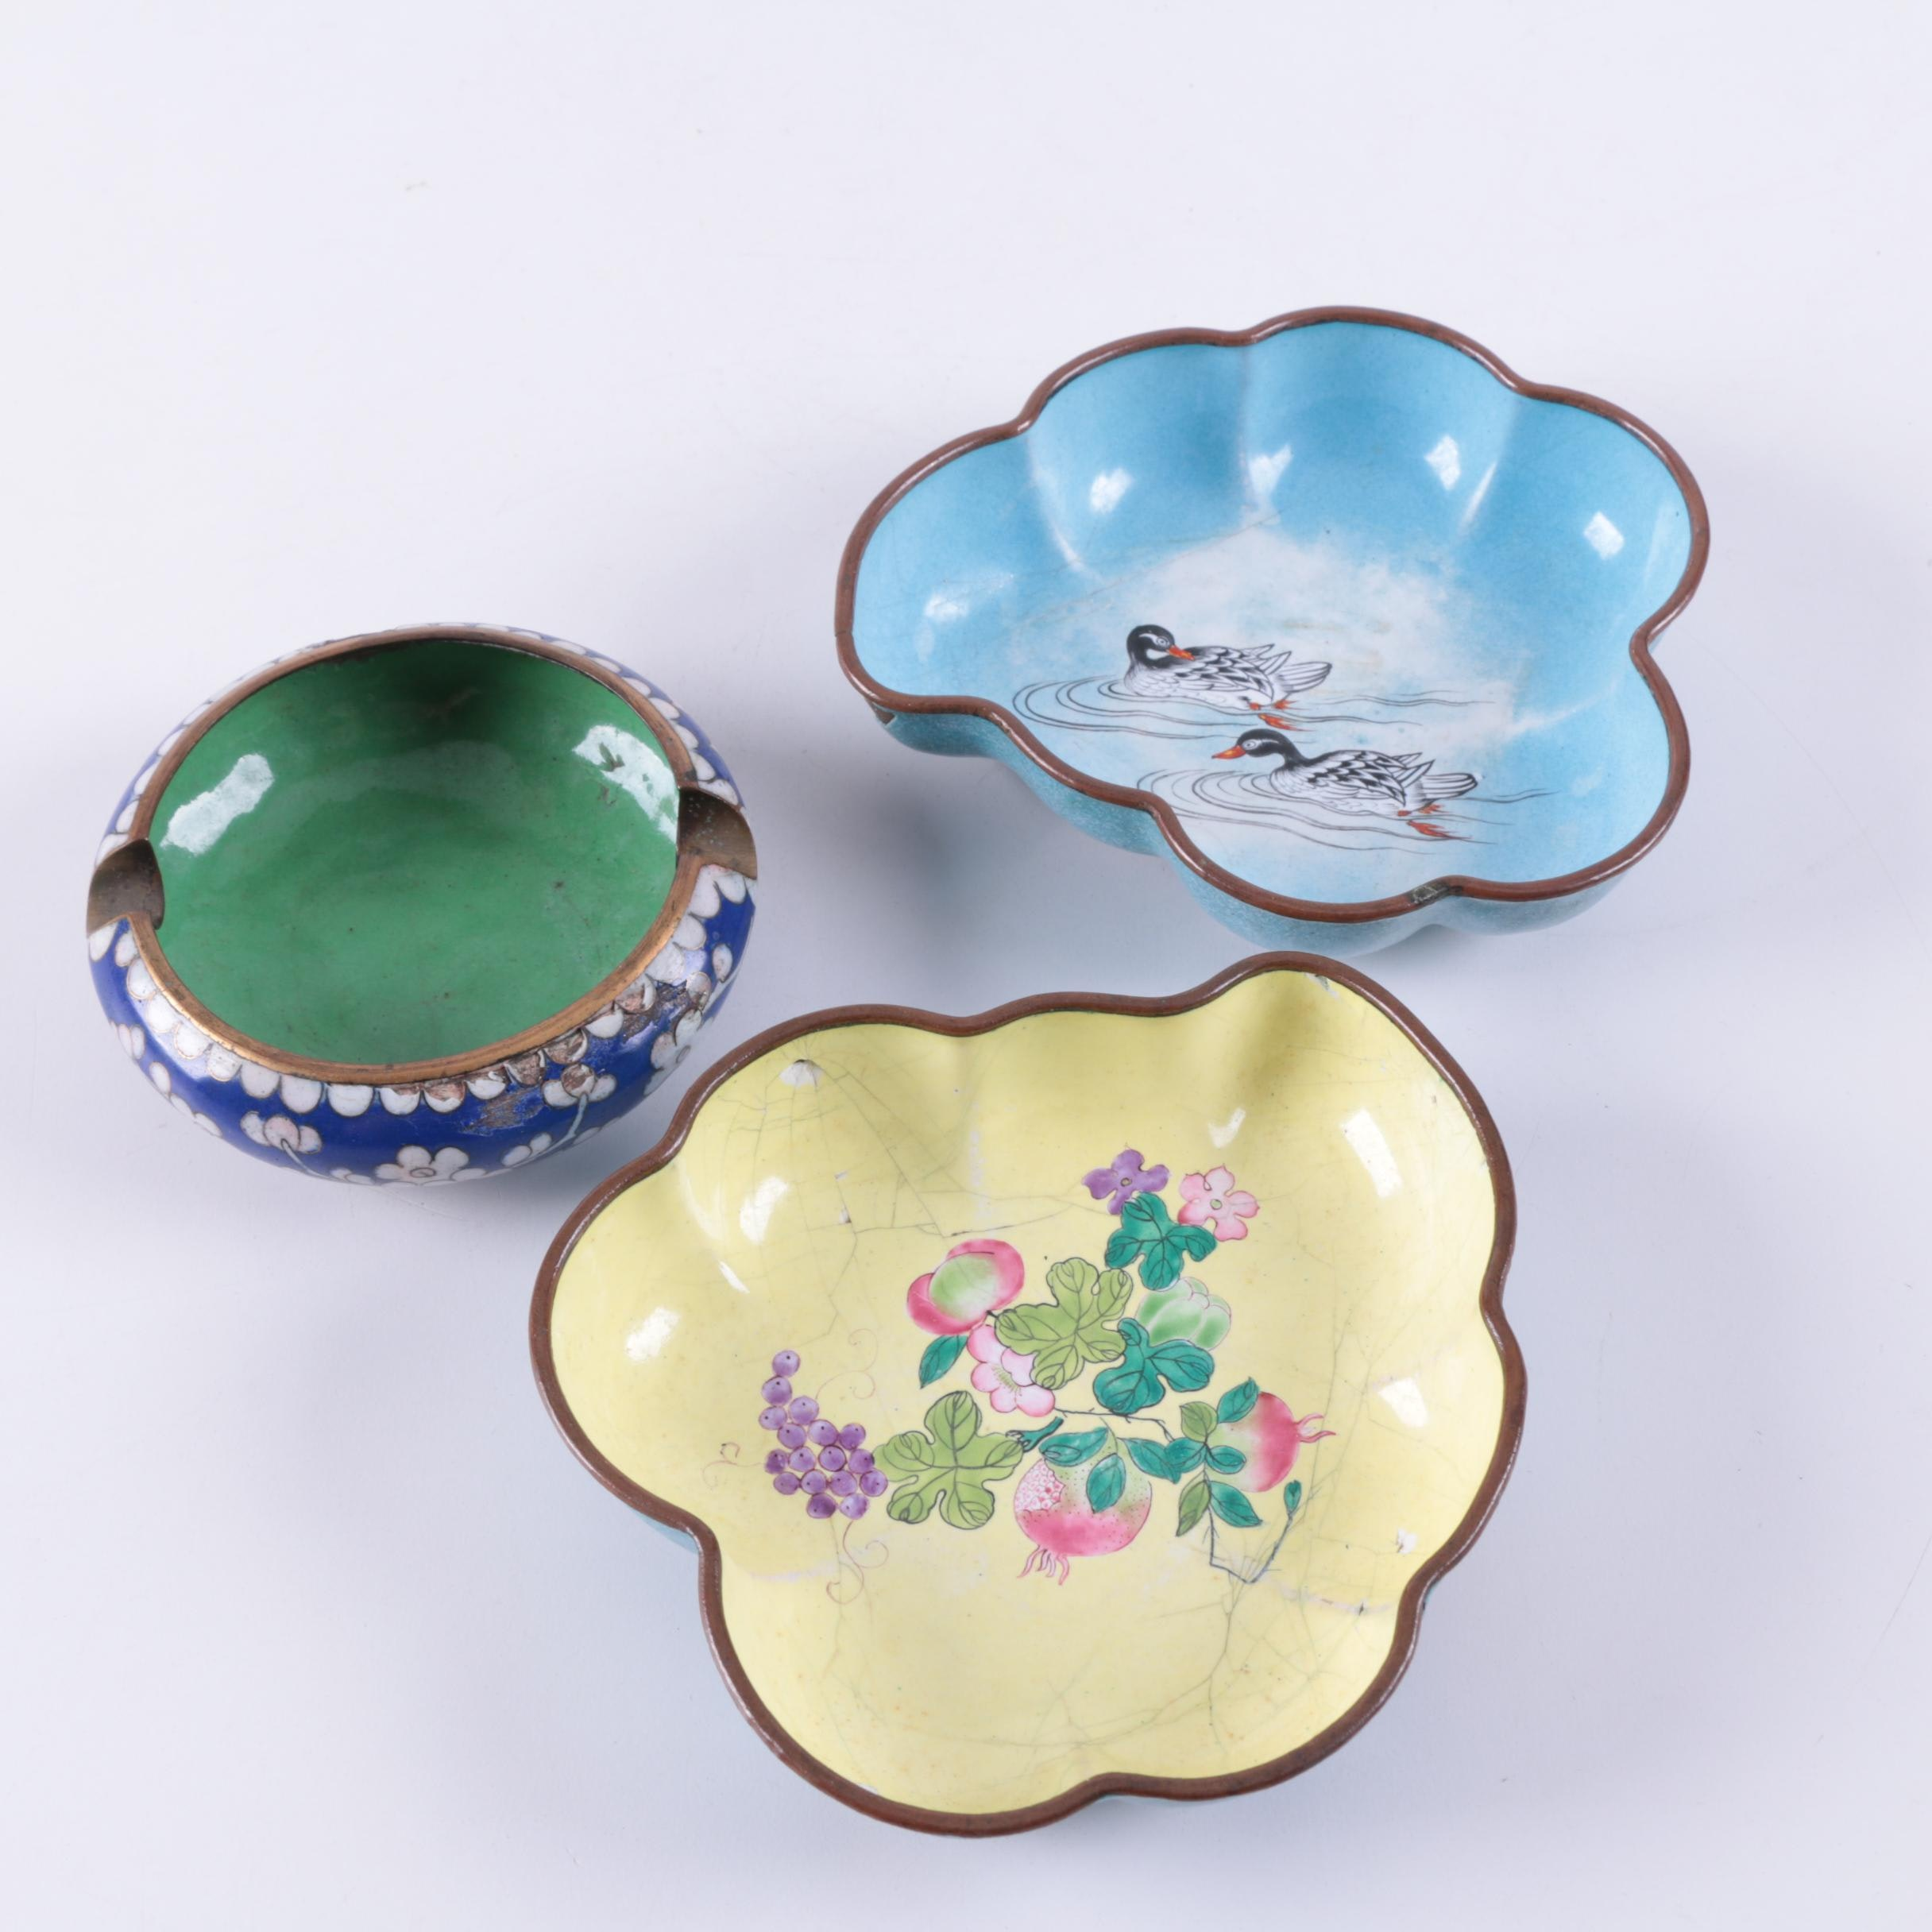 Chinese Enamel Bowls and Ash Receiver